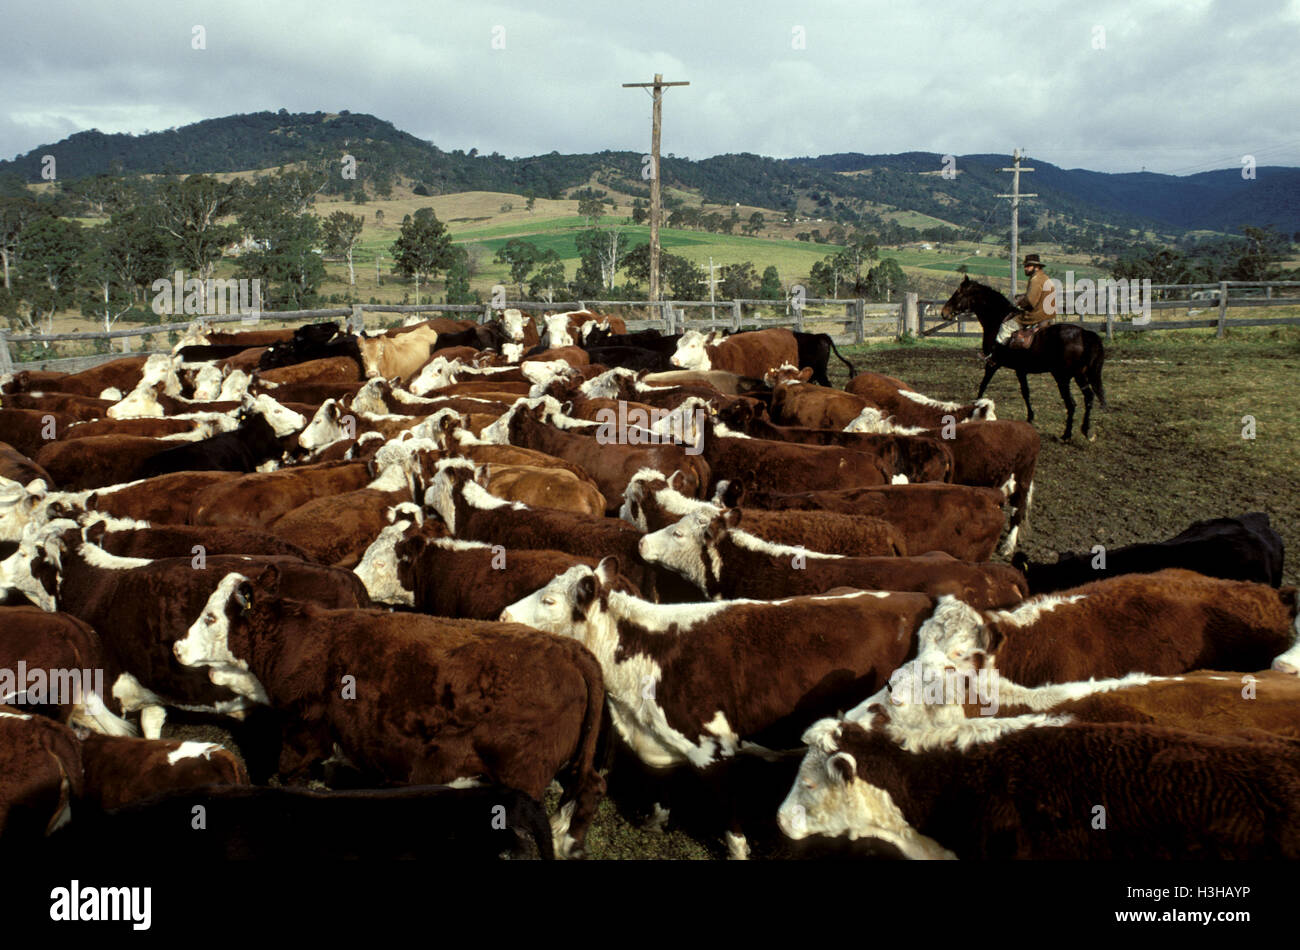 Cattle being mustered, - Stock Image